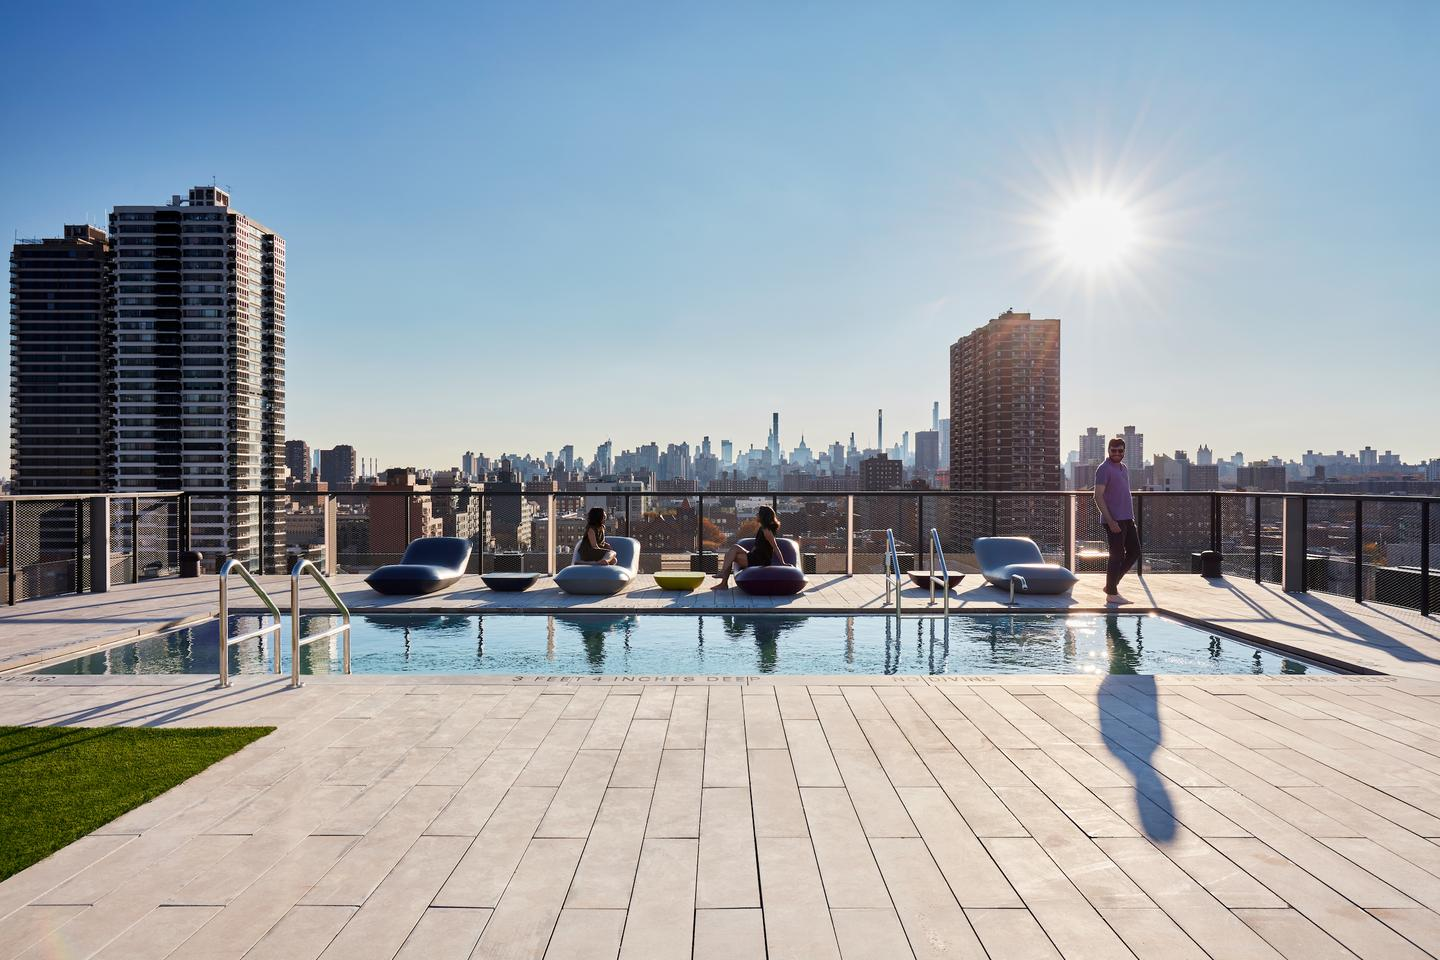 The Smile's rooftop terrace area includes one swimming pool and three hot tubs for residents to enjoy